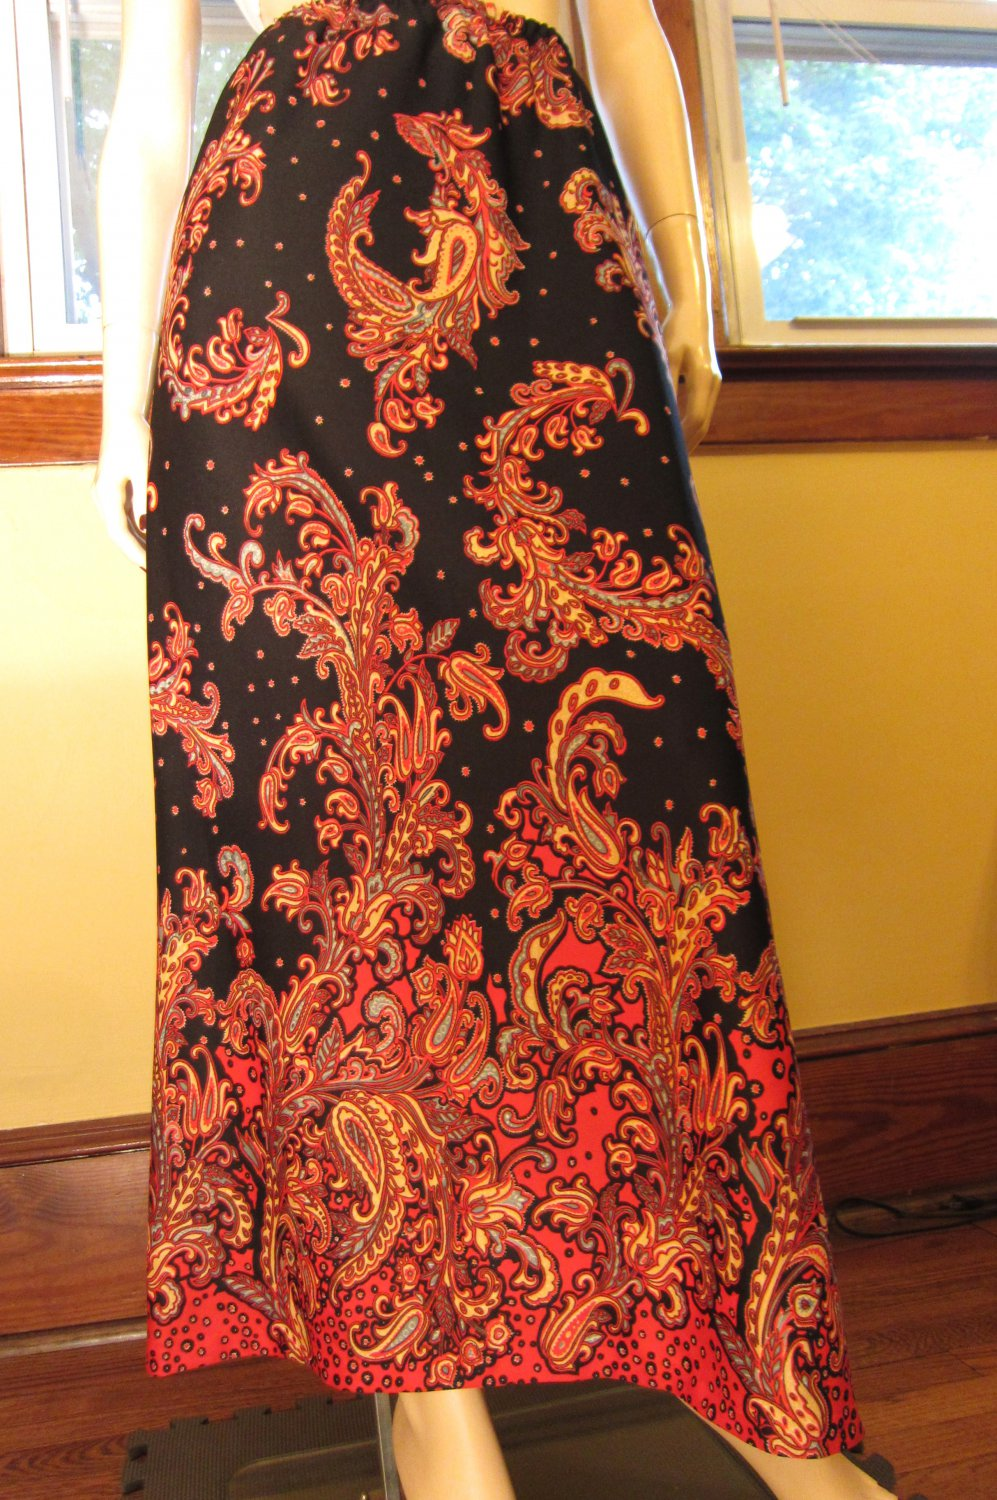 Vintage 60s Boho Hippie Psychedelic Floral Paisley Indian Style Maxi Skirt M.